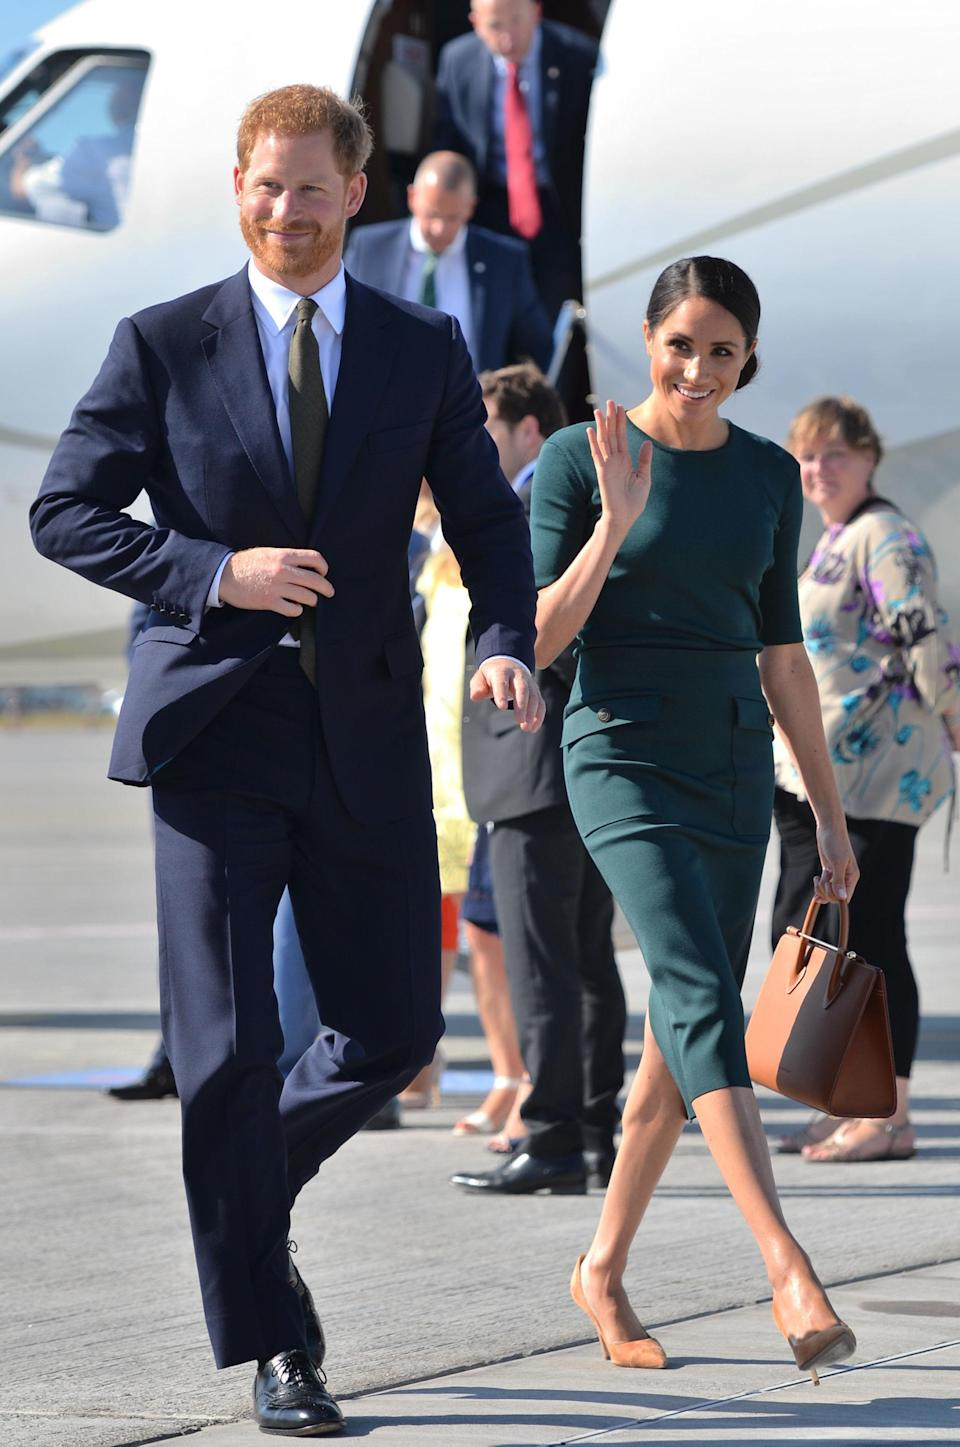 The Duchess of Sussex dressed diplomatically for her arrival into Dublin in a forest green co-ord by Givenchy [Photo: Getty]